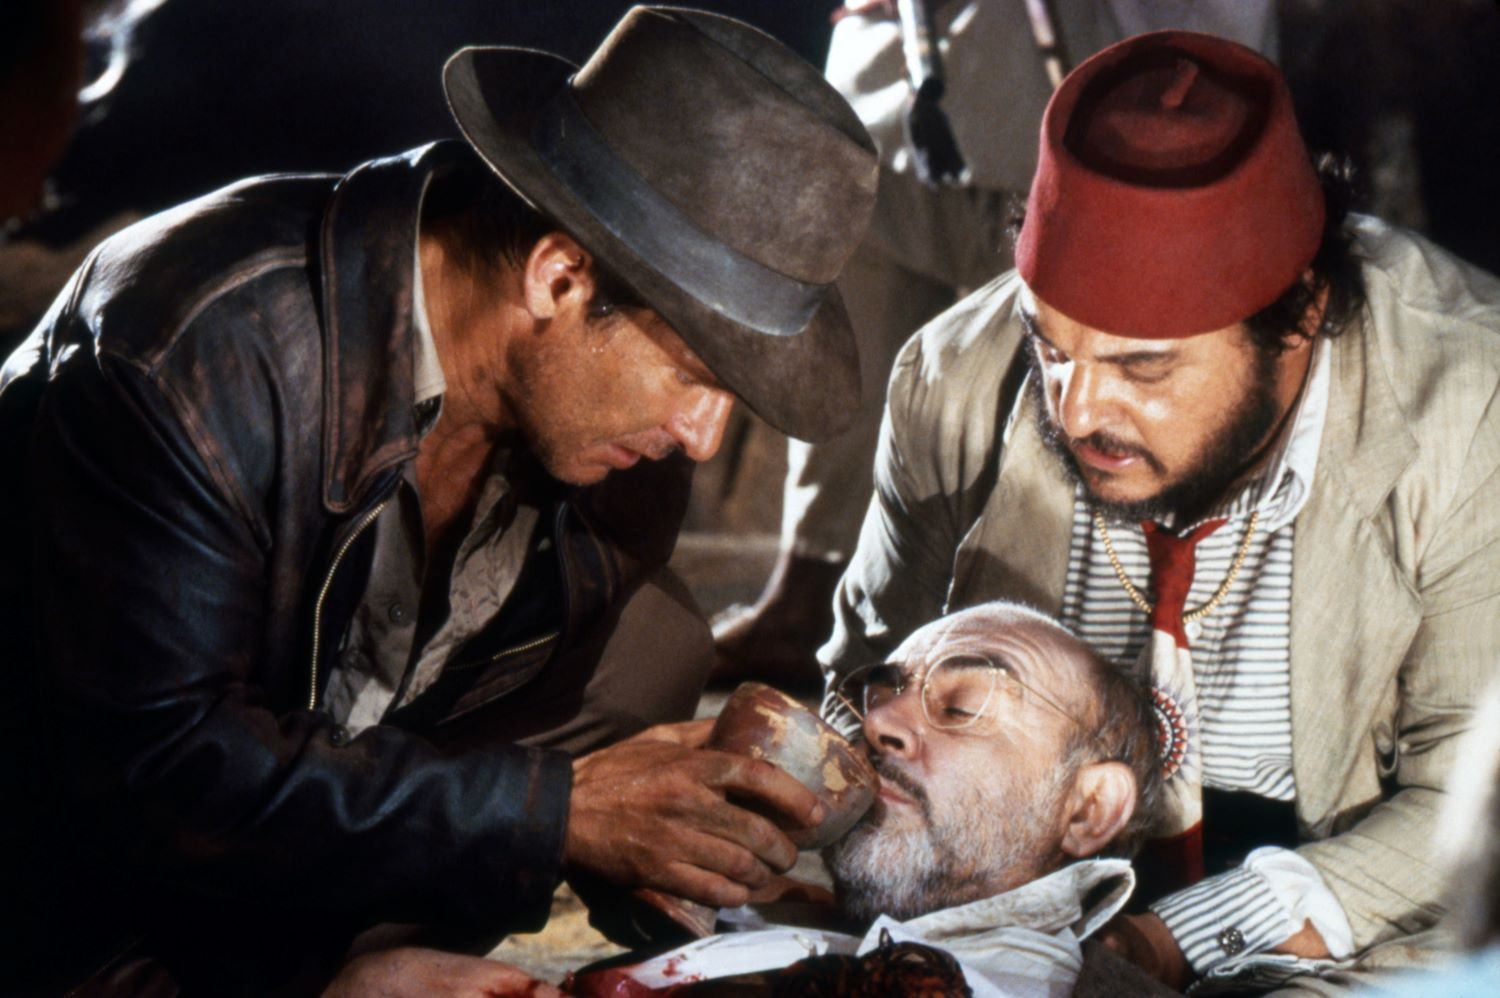 Harrison Ford, John Rhys-Davies and Sean Connery in 'Indiana Jones and the Last Crusade'